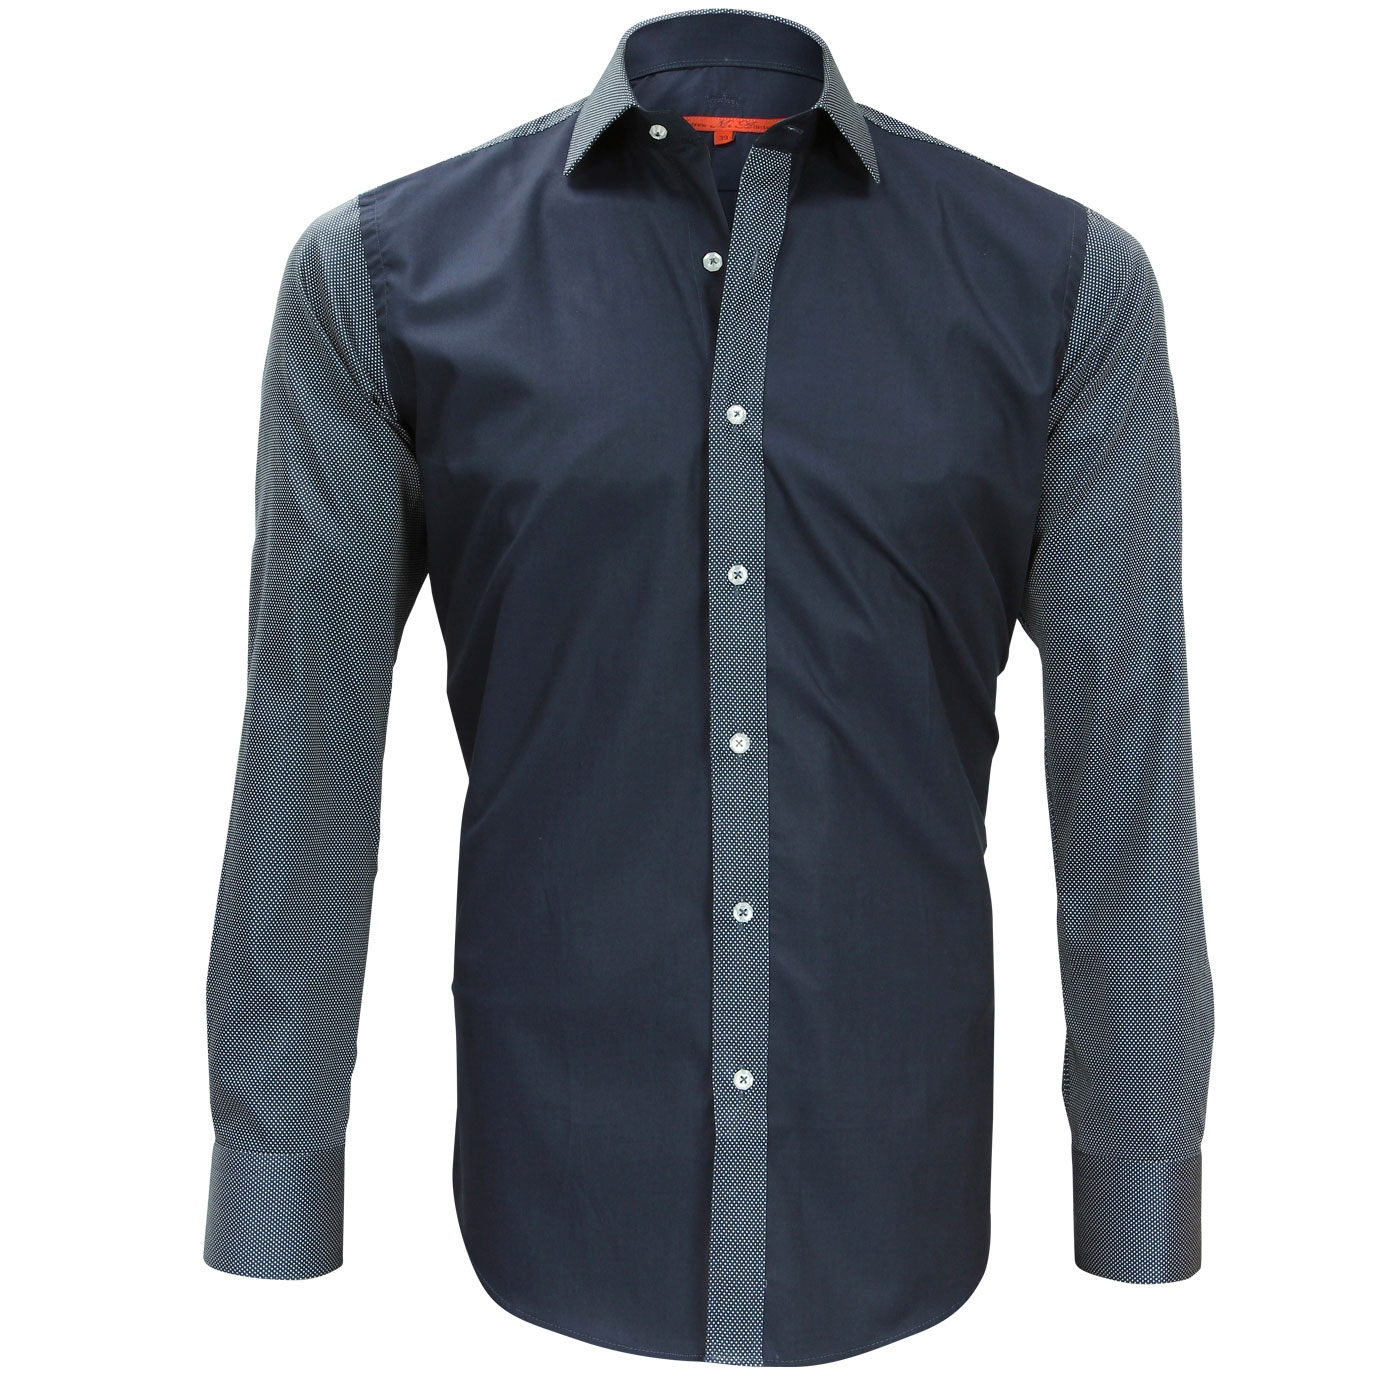 Trend Shirts: +600 Exclusive Creations on webmenshirts